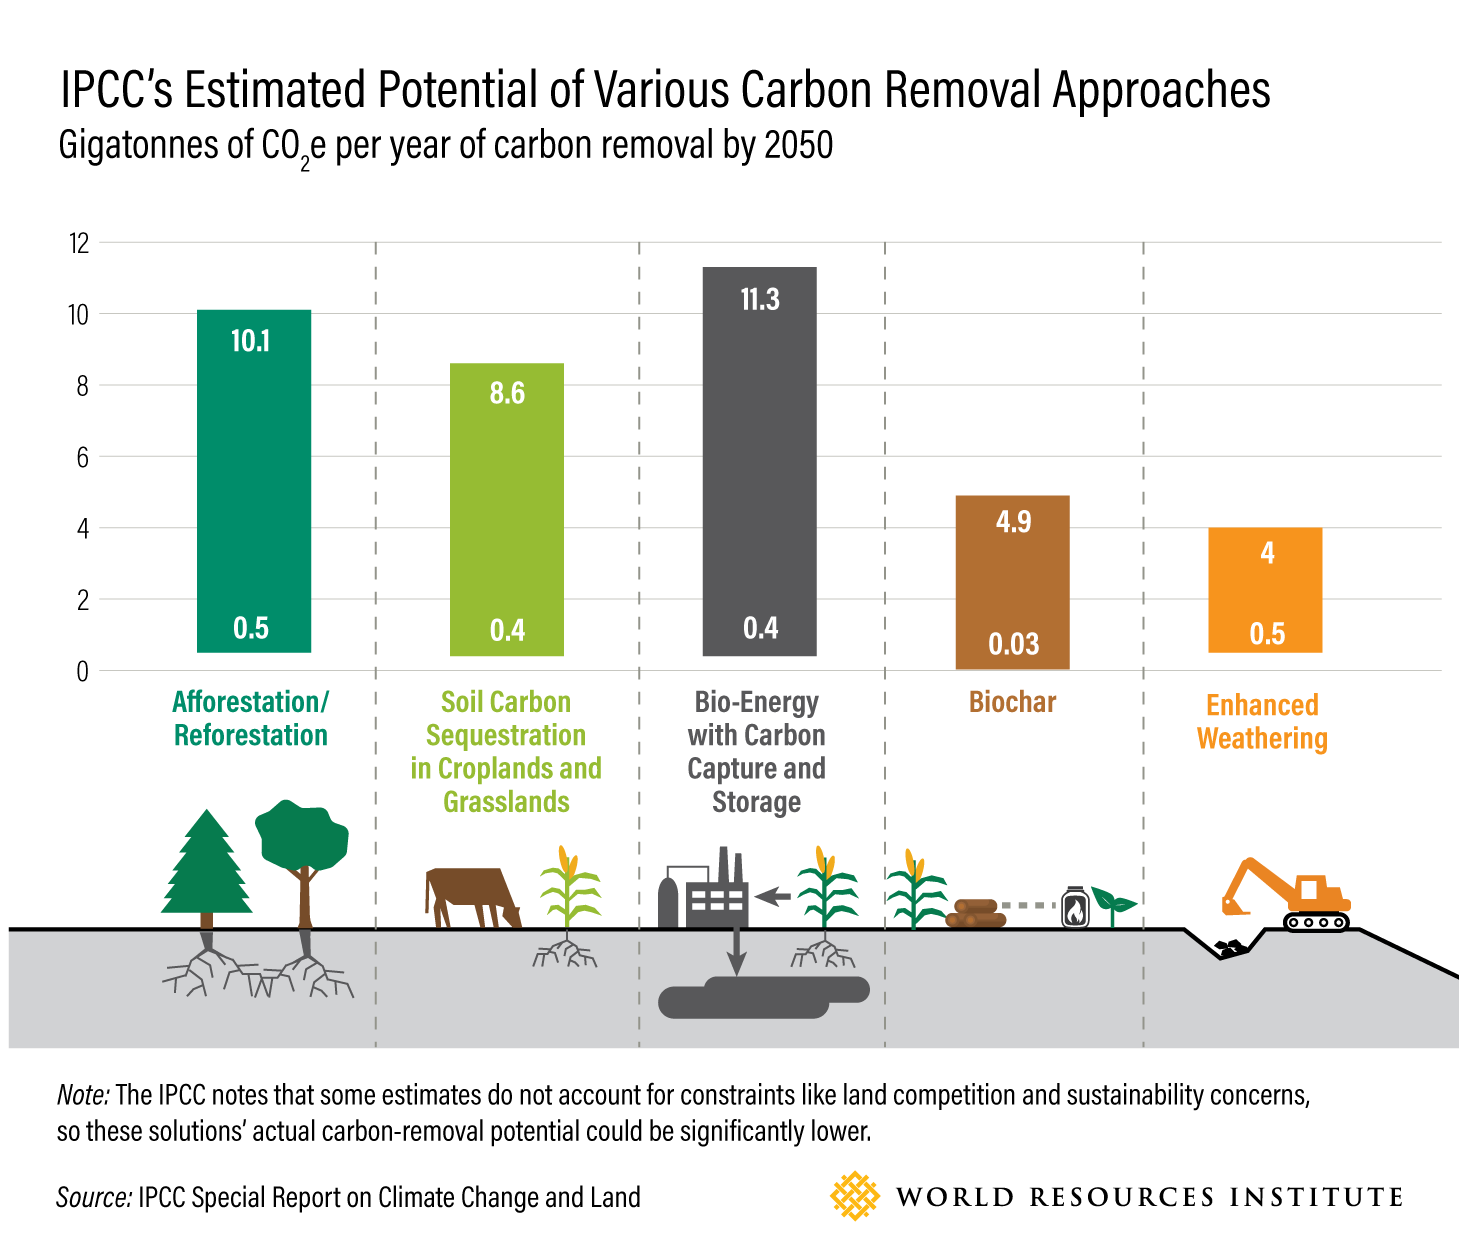 IPCC's Estimated Potential of Various Carbon Removal Approaches